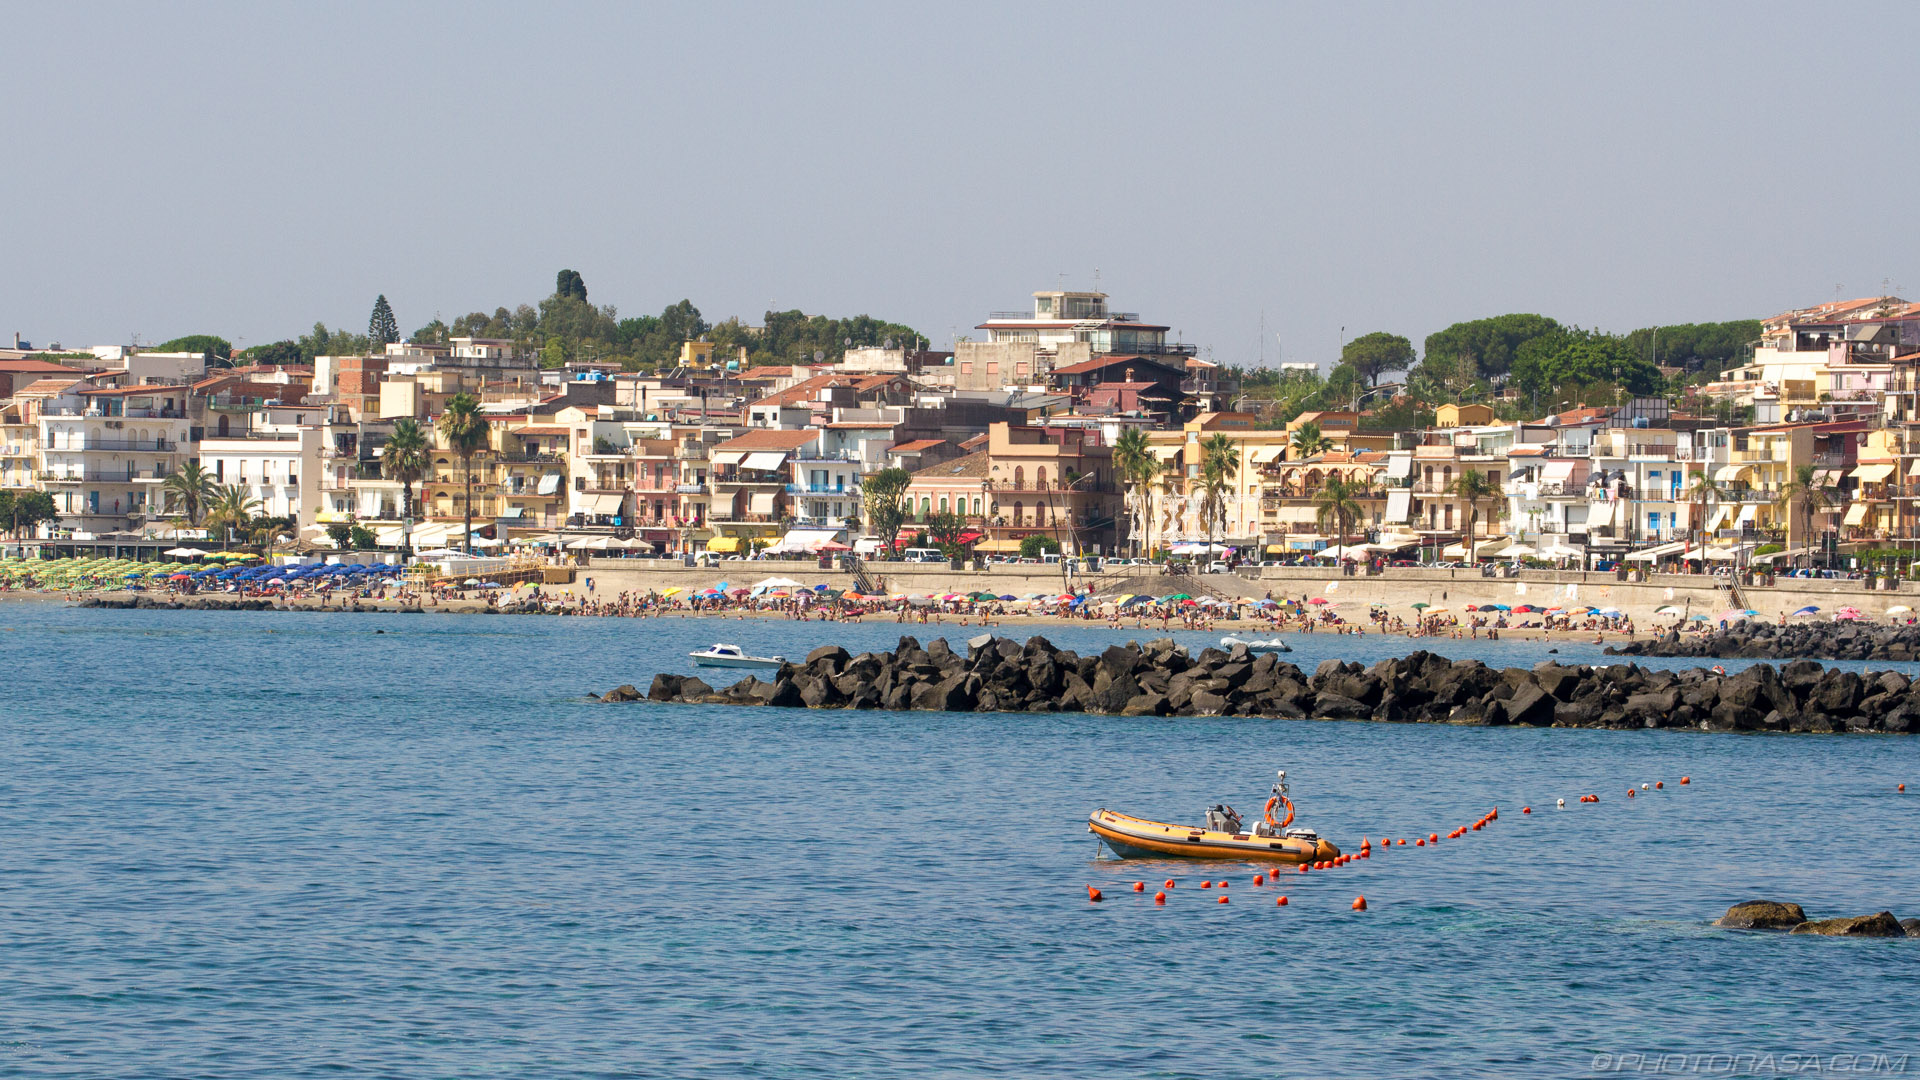 http://photorasa.com/places/giardini-naxos/attachment/giardini-naxos-2/